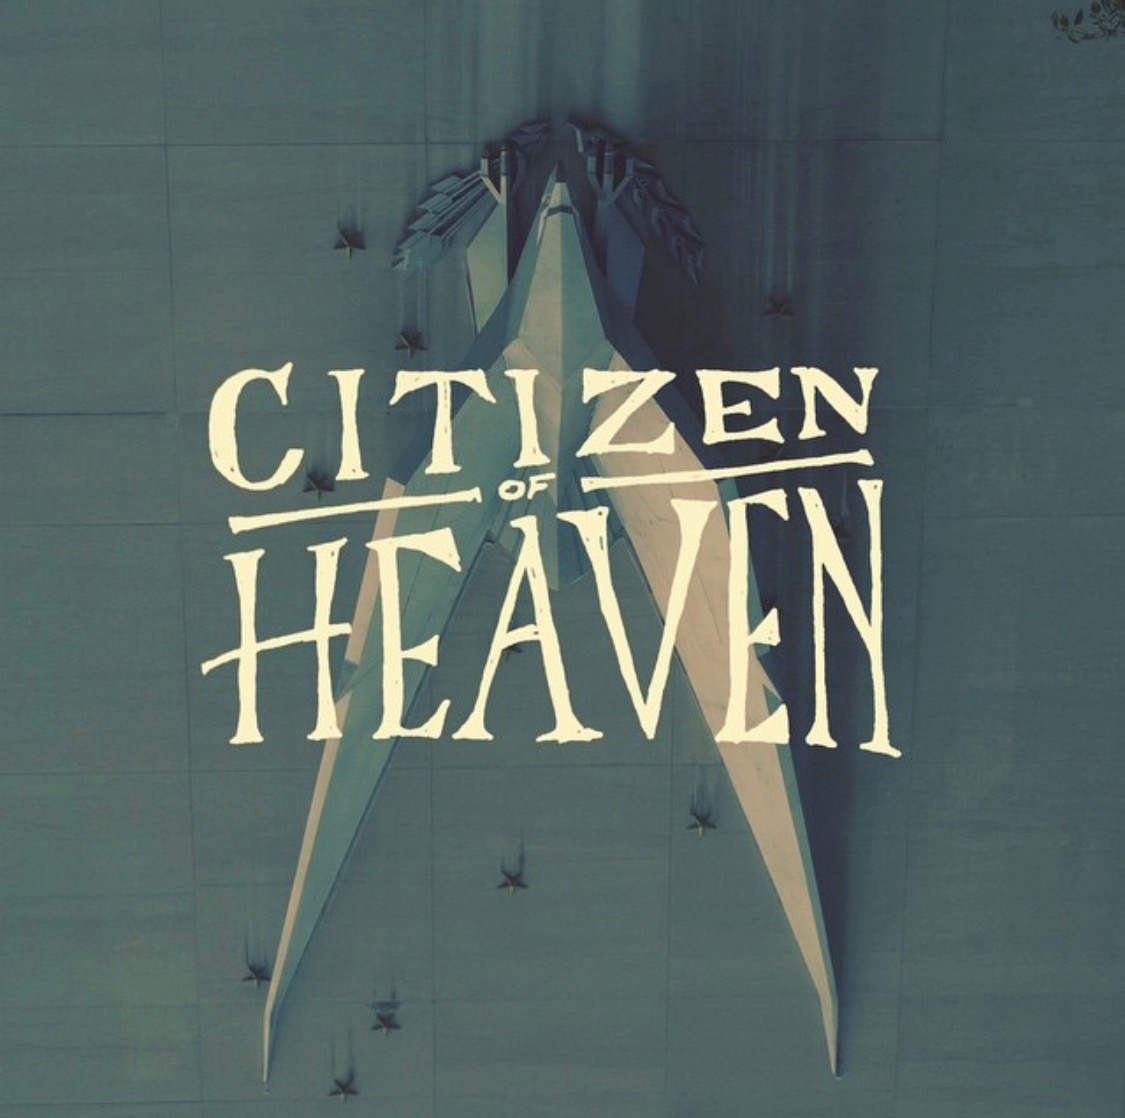 Citizen of Heaven Scratch design at an angle